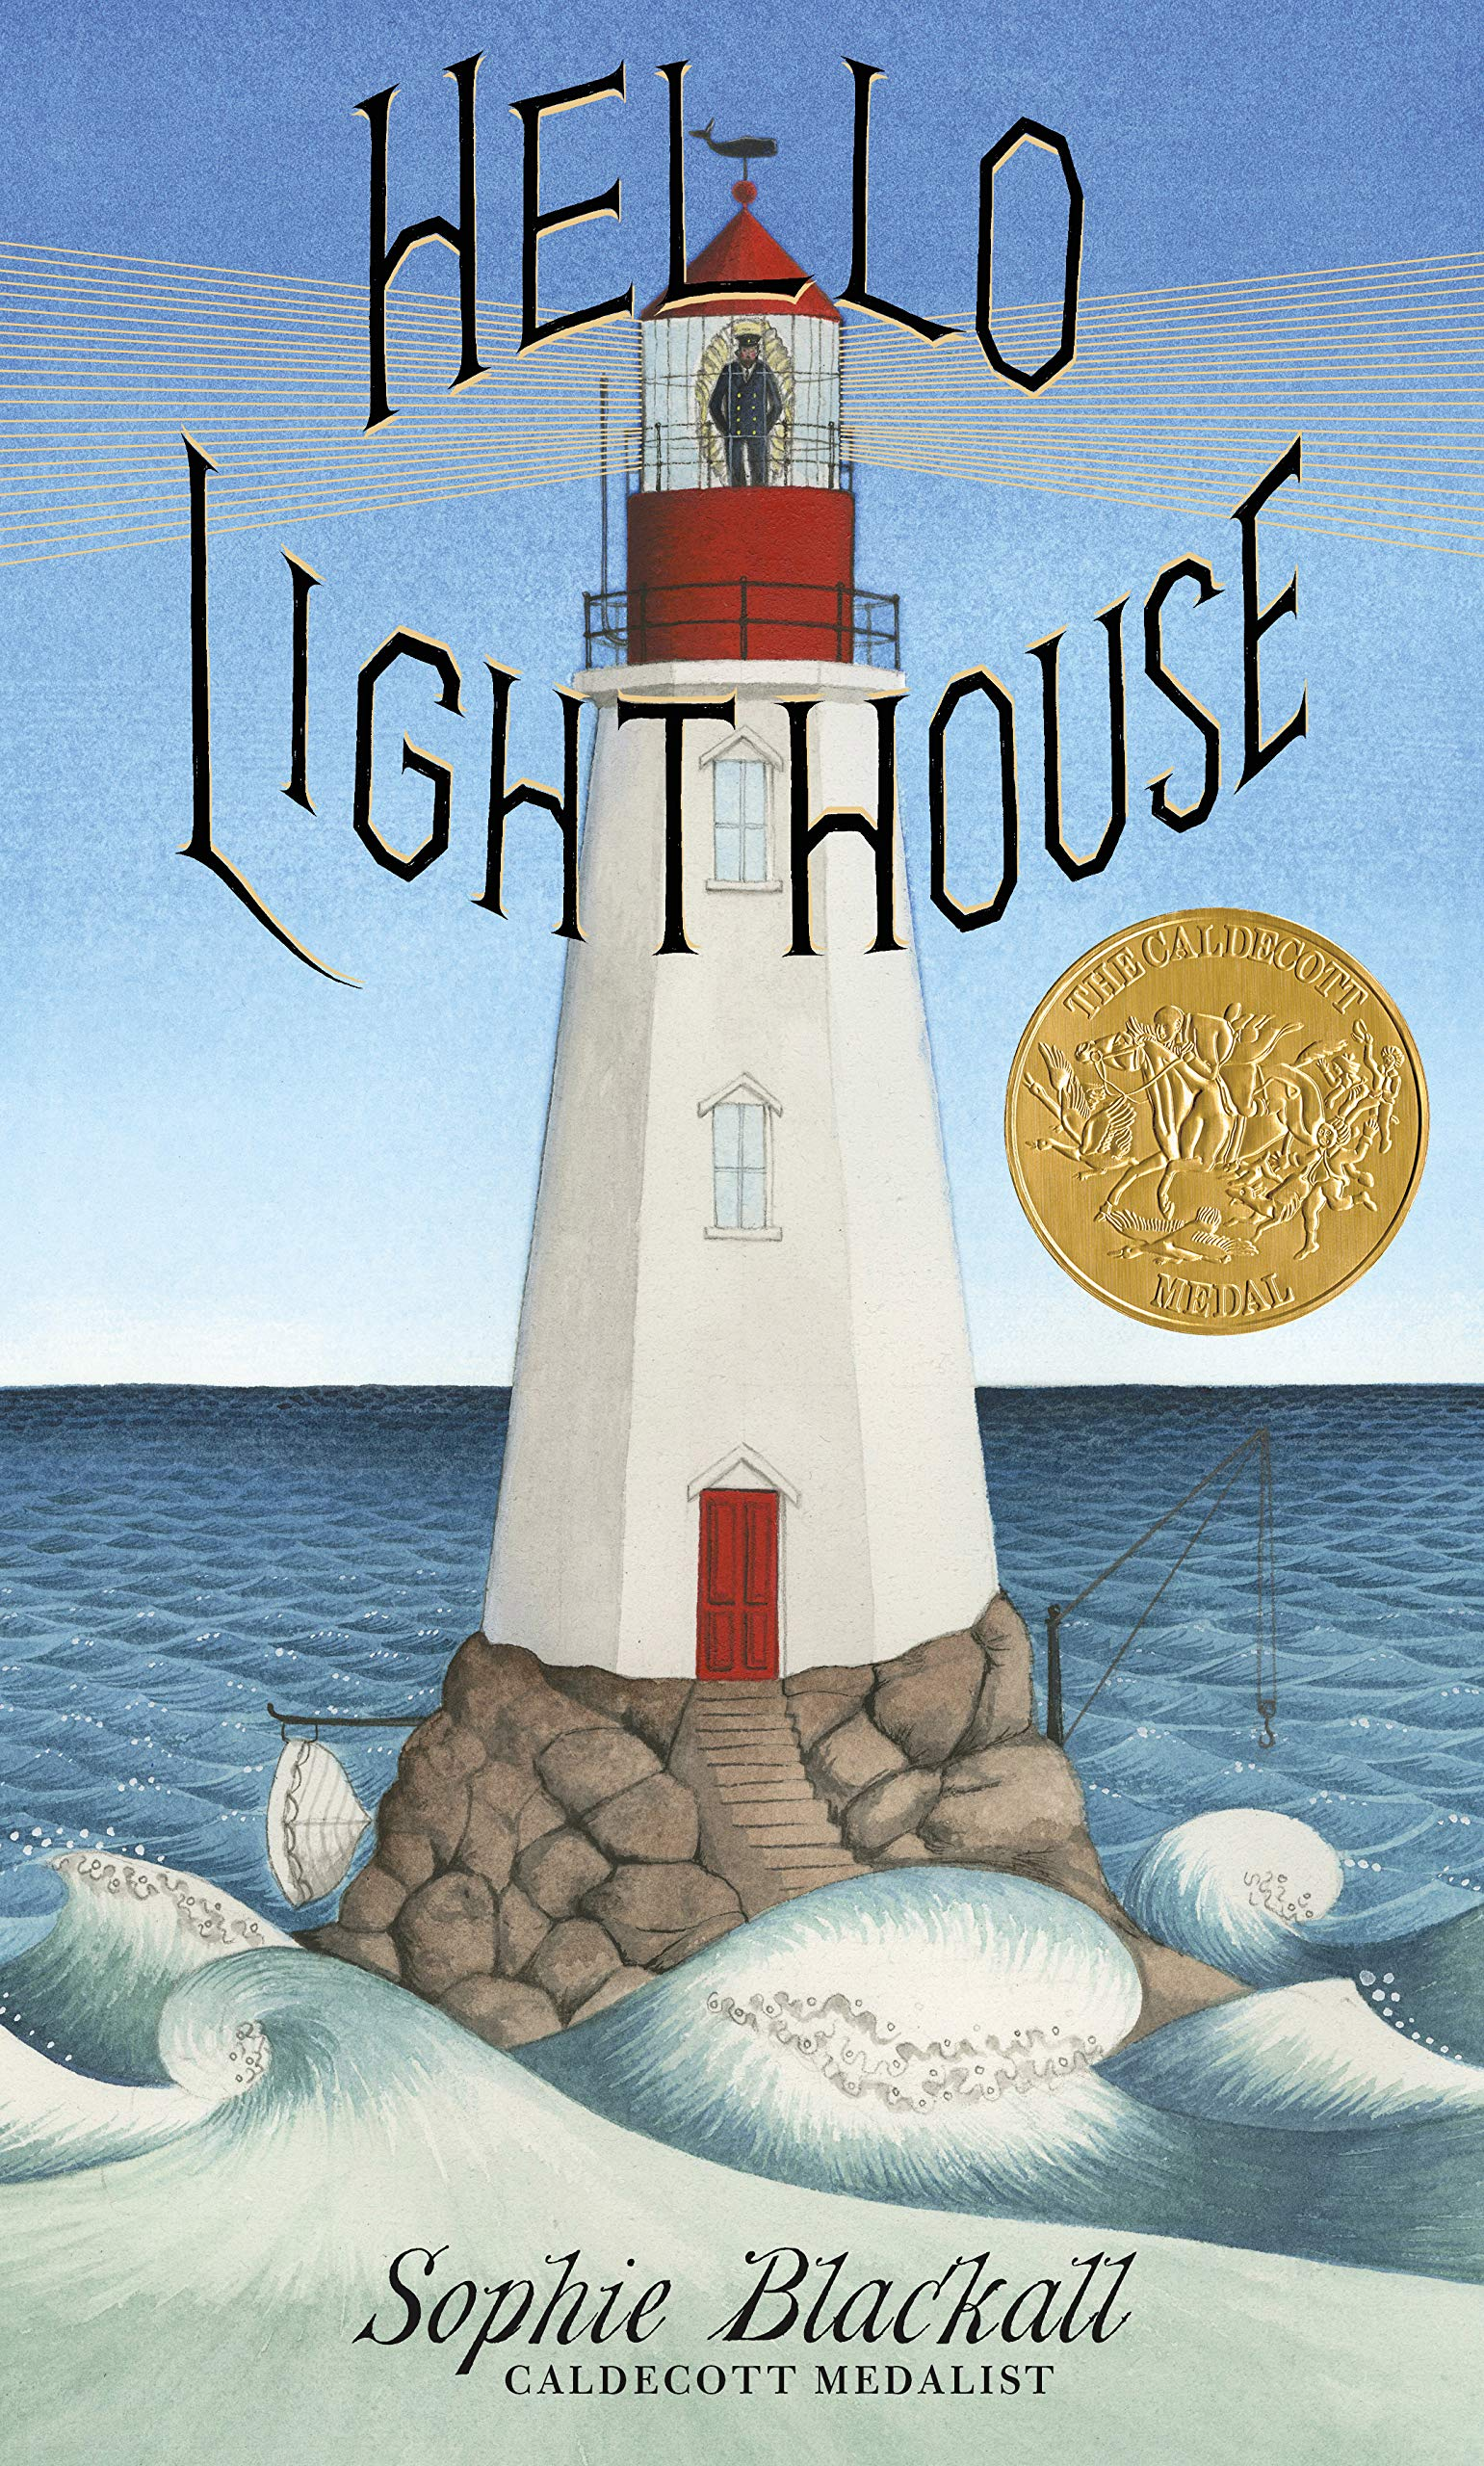 Image result for hello lighthouse